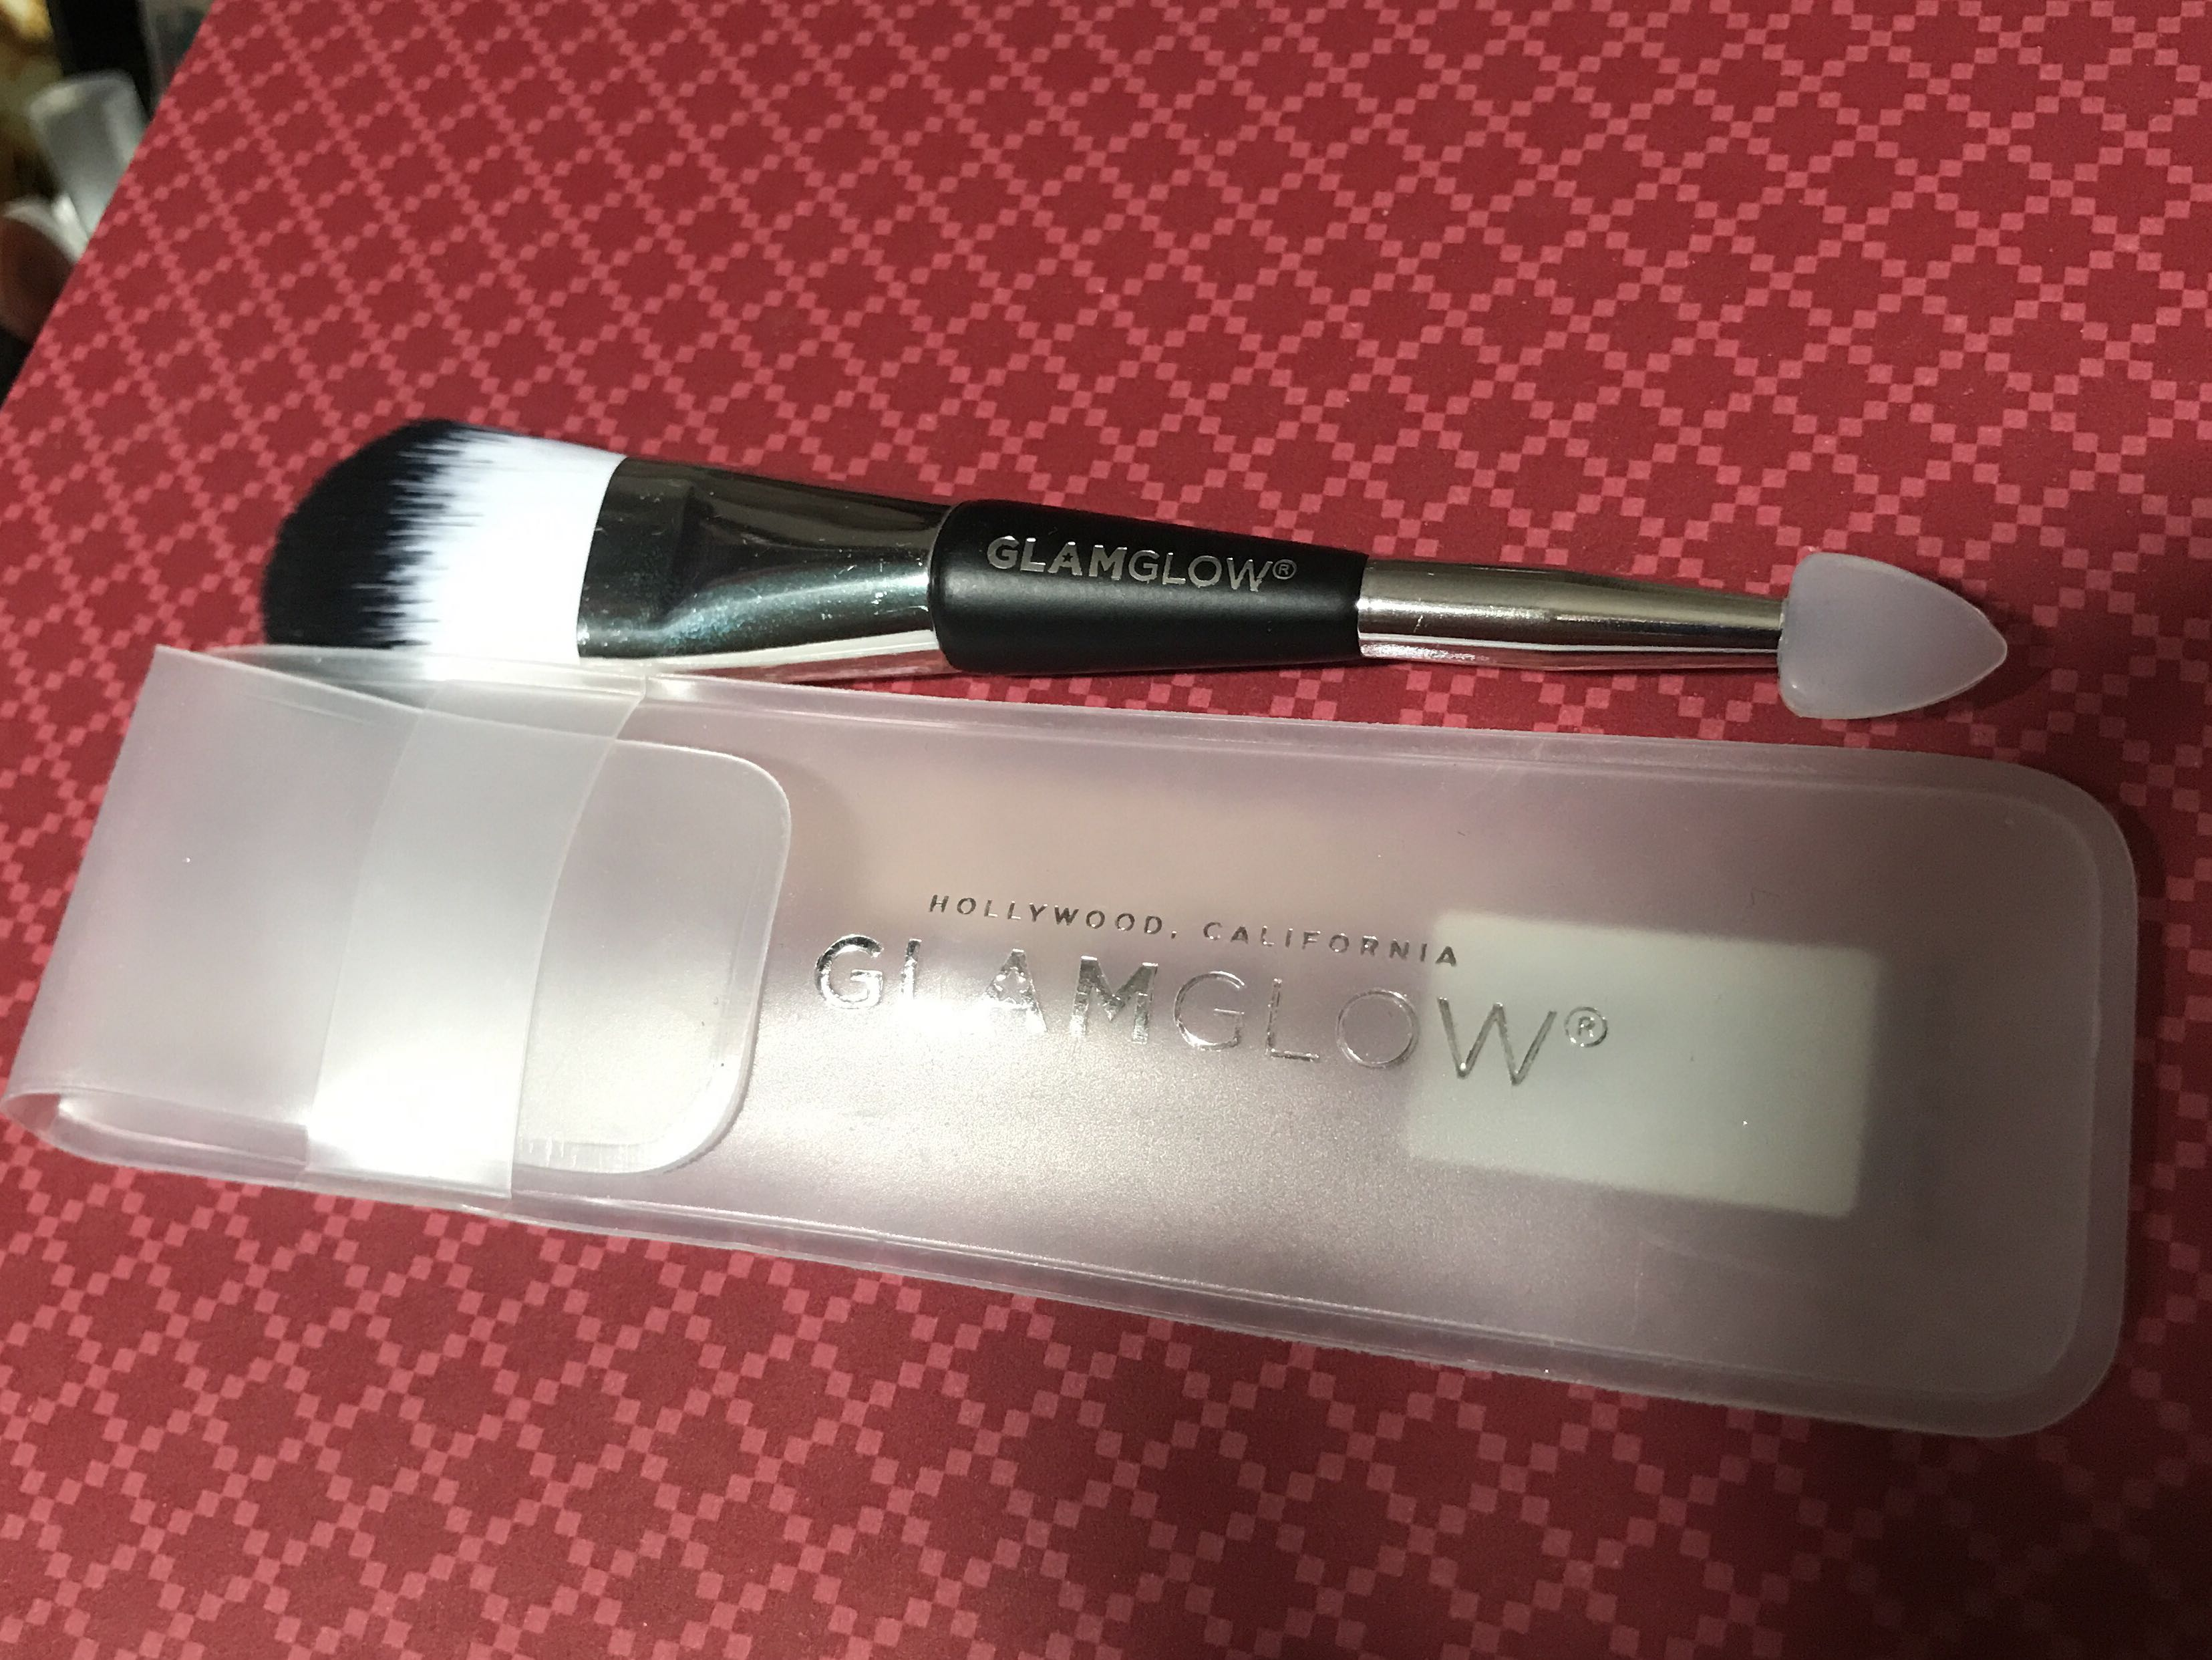 Glam glow mask brush